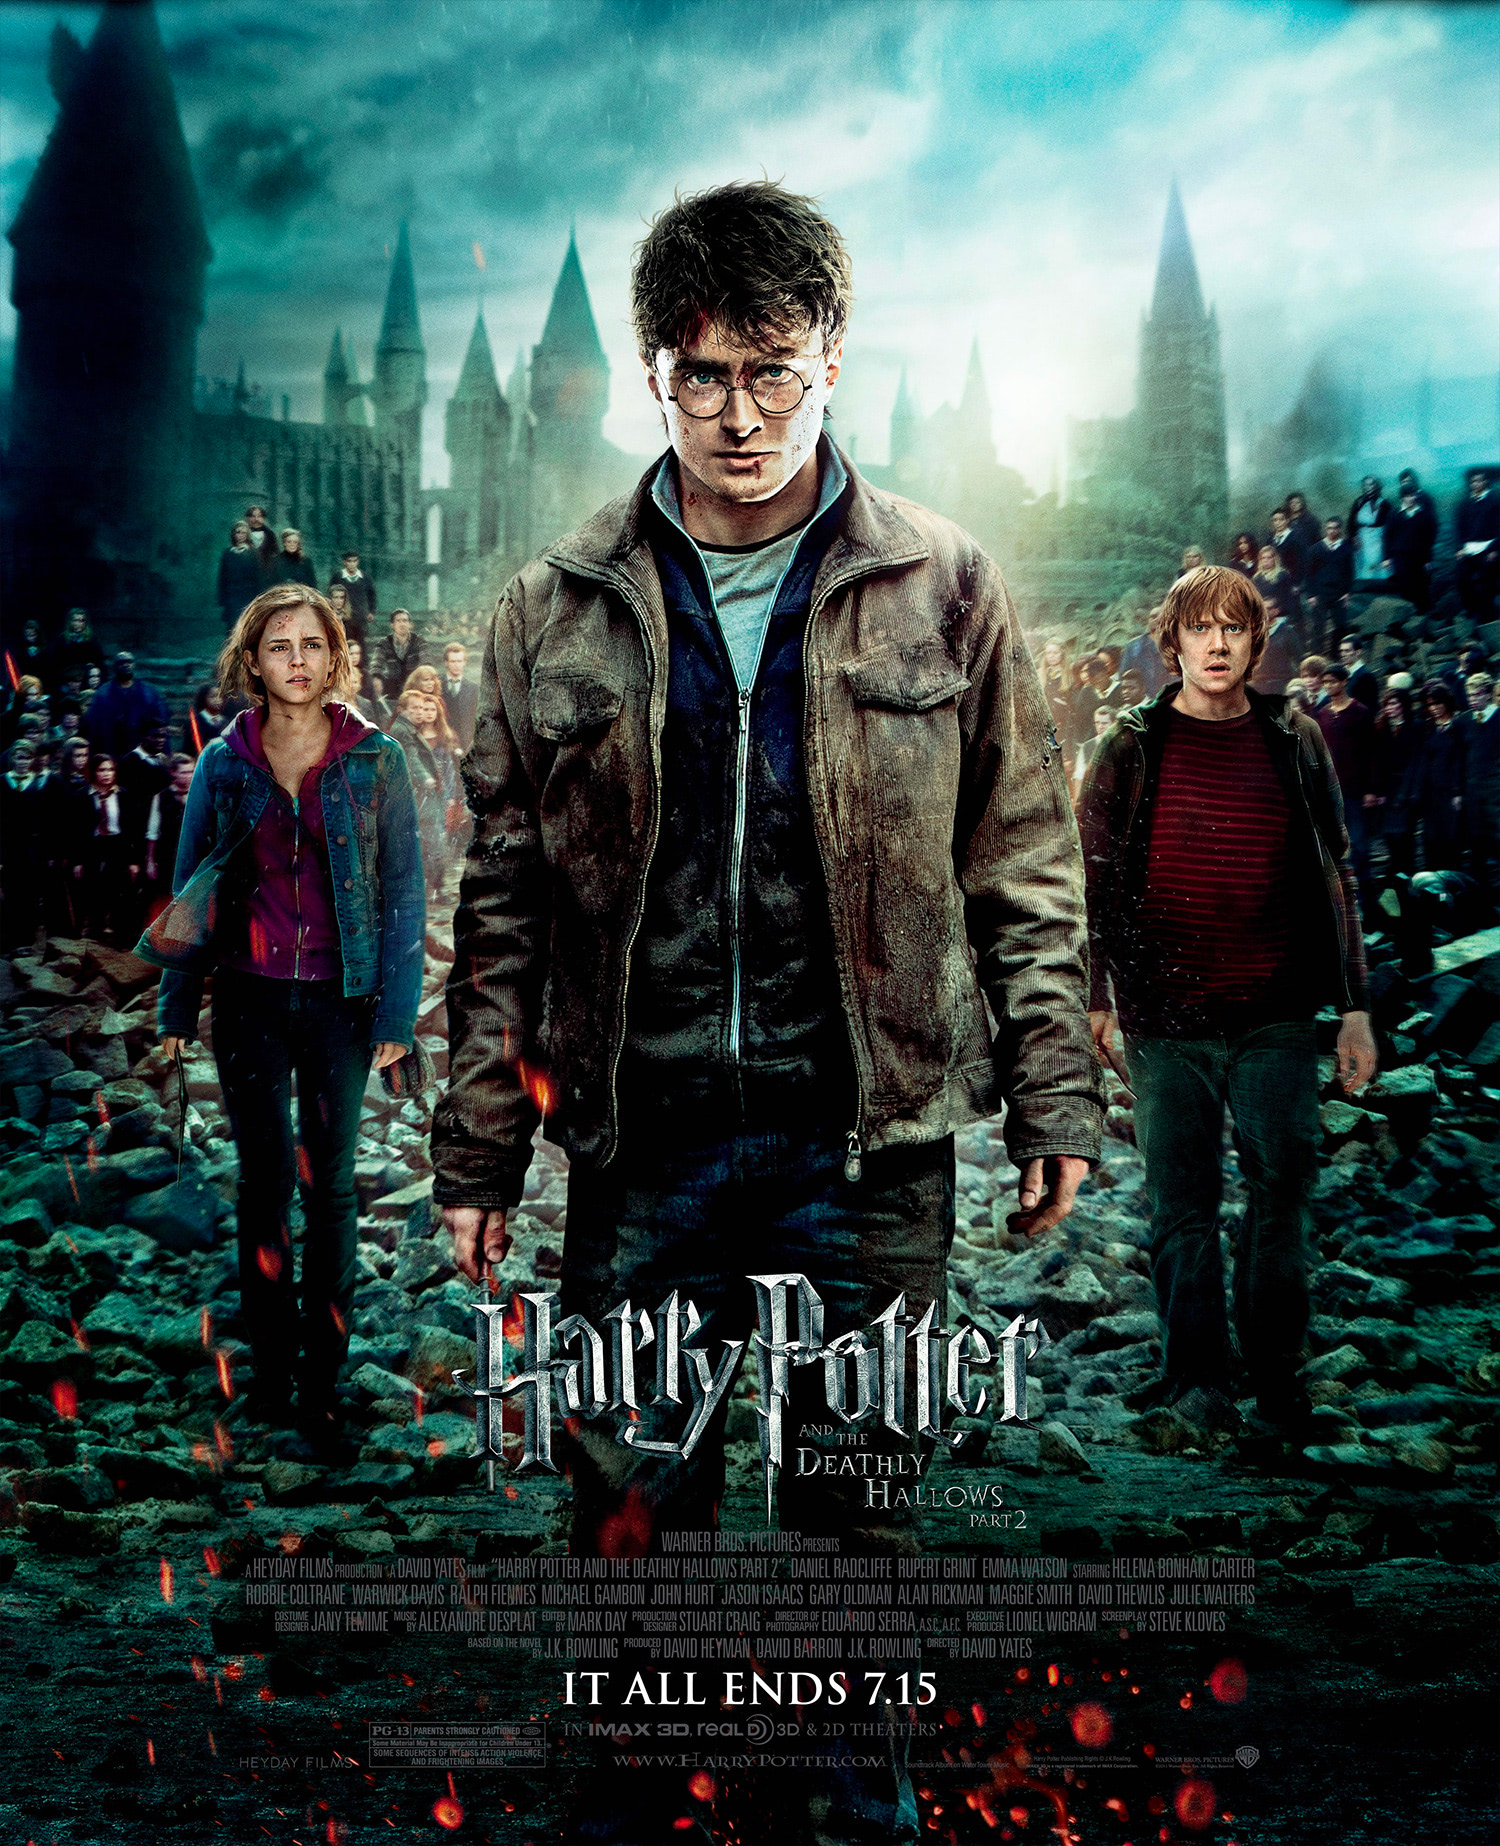 'Deathly Hallows: Part 2' 'It All Ends' poster